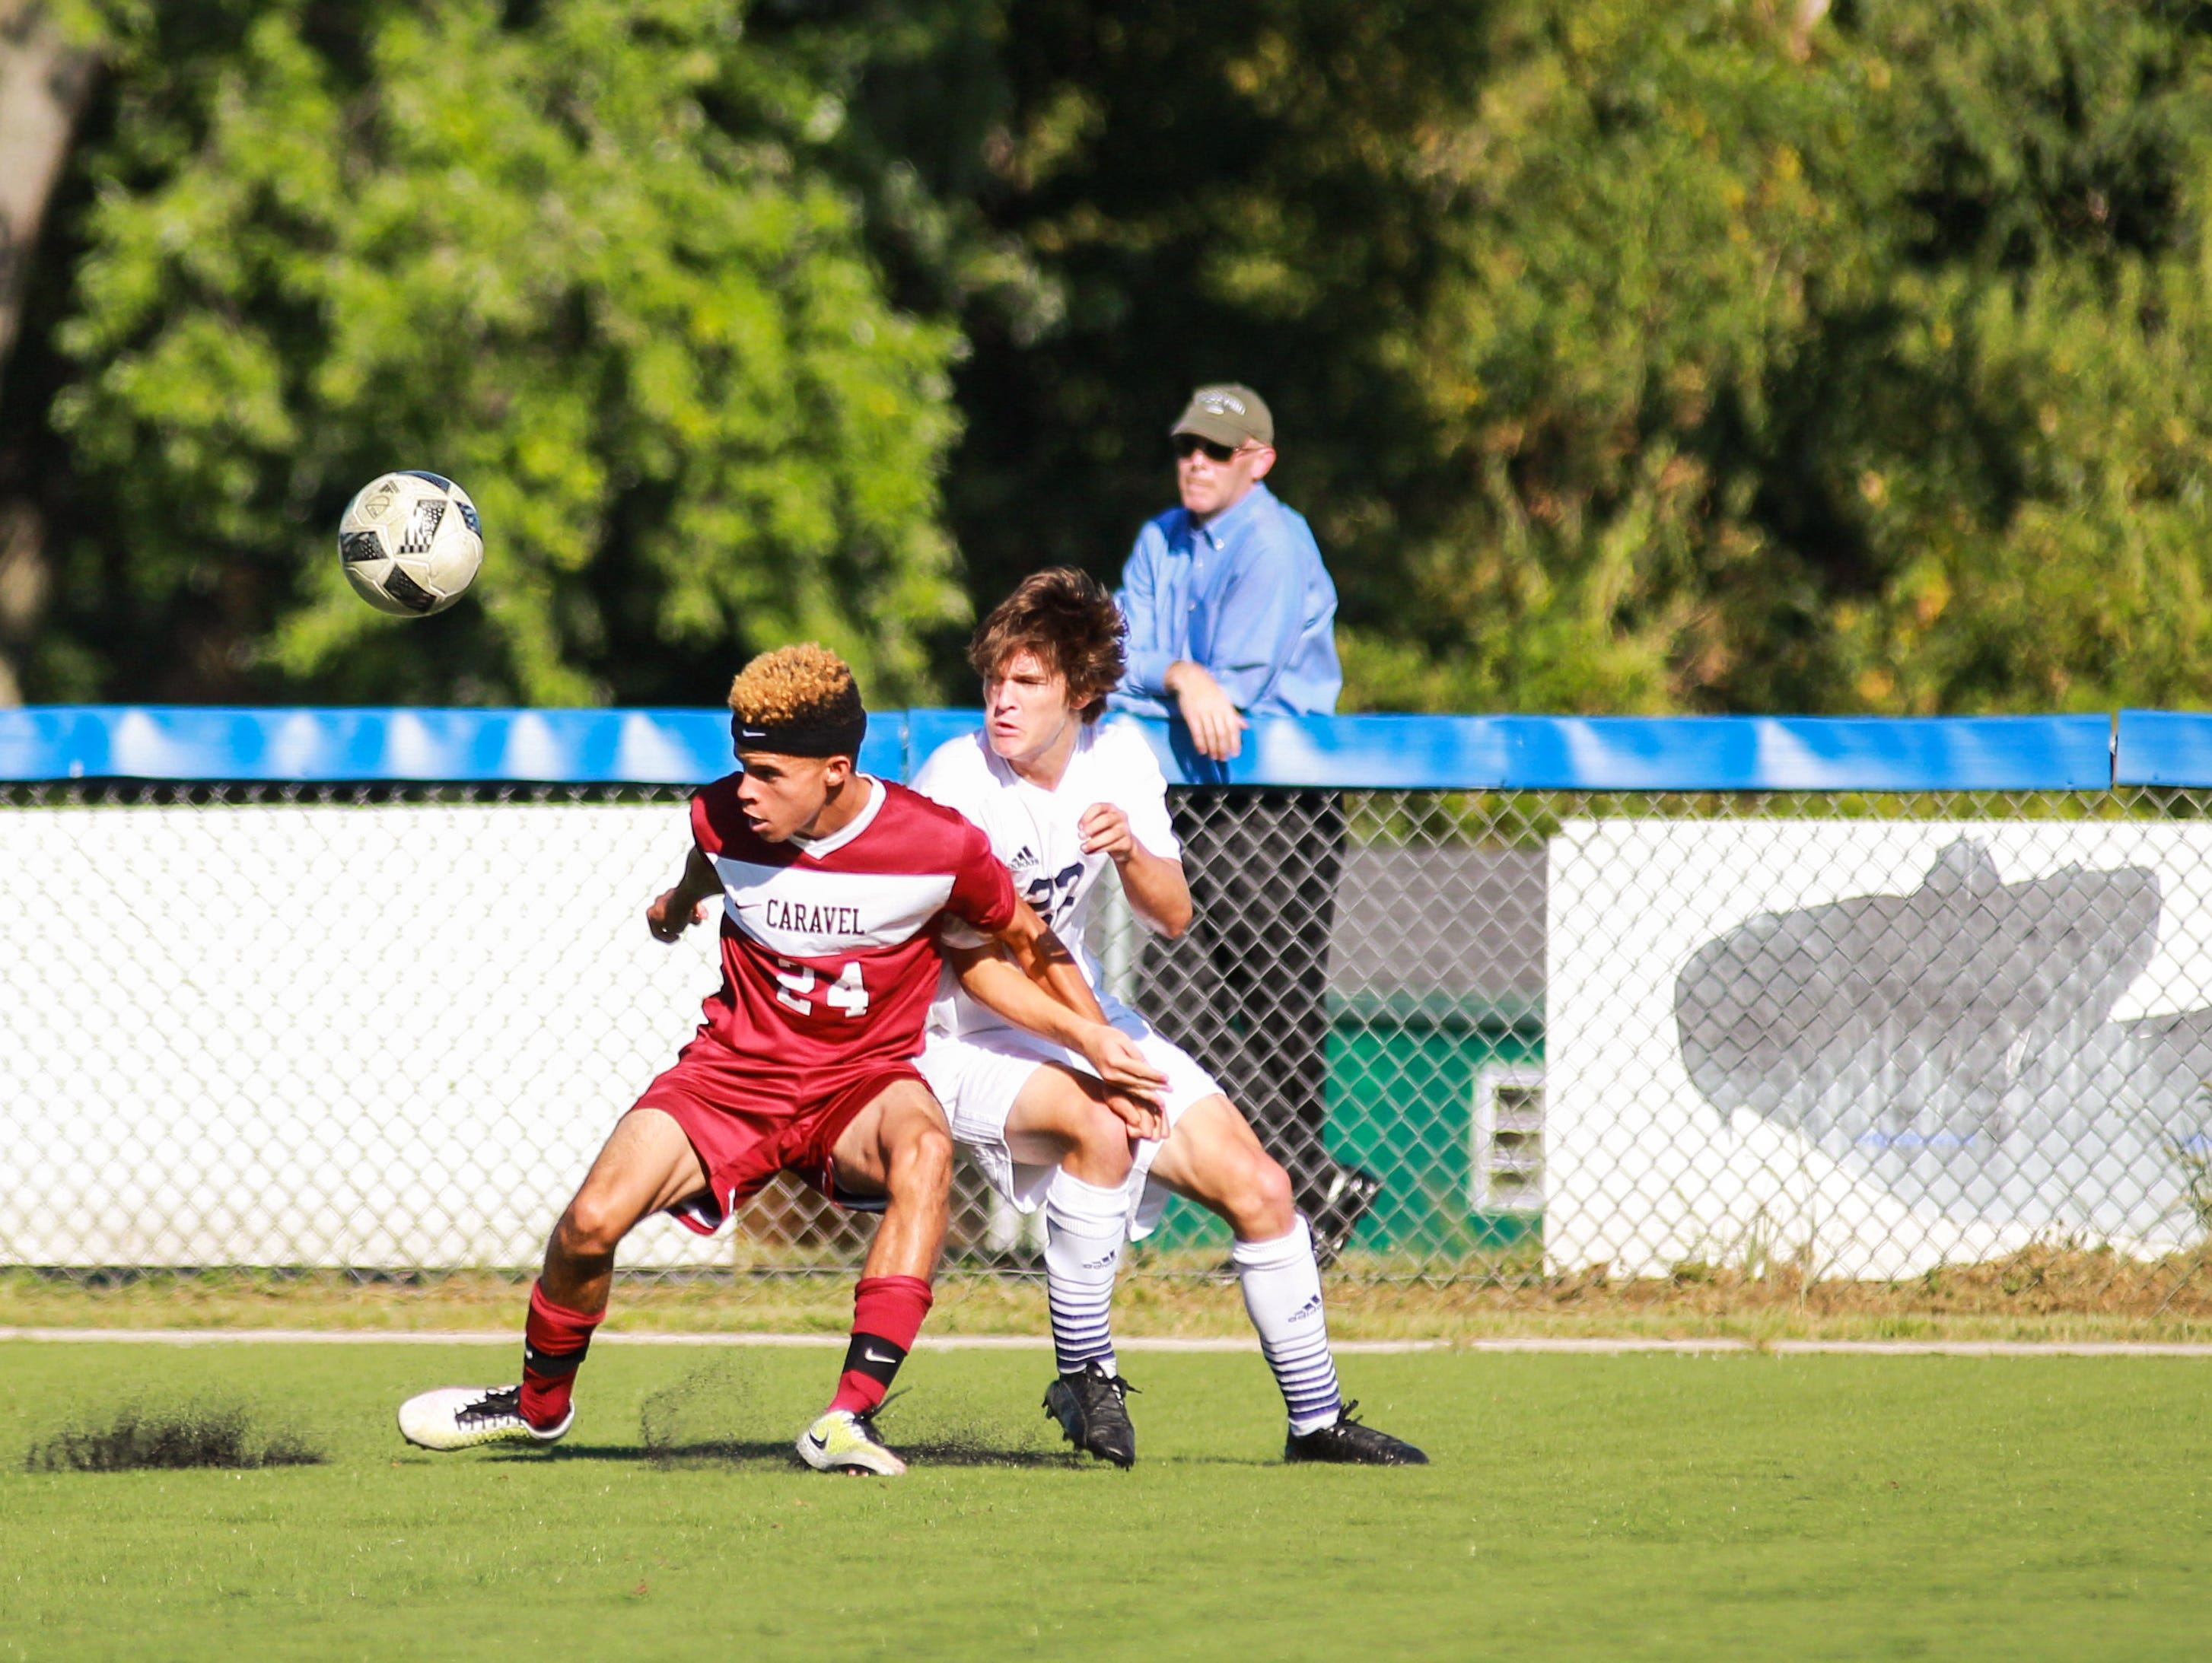 Caravel's Austyn Hamilton (24) tries to keep Salesianum's Aiden Kelly (23) from gaining control of the ball in the Sals' 7-0 win over Caravel on Tuesday.